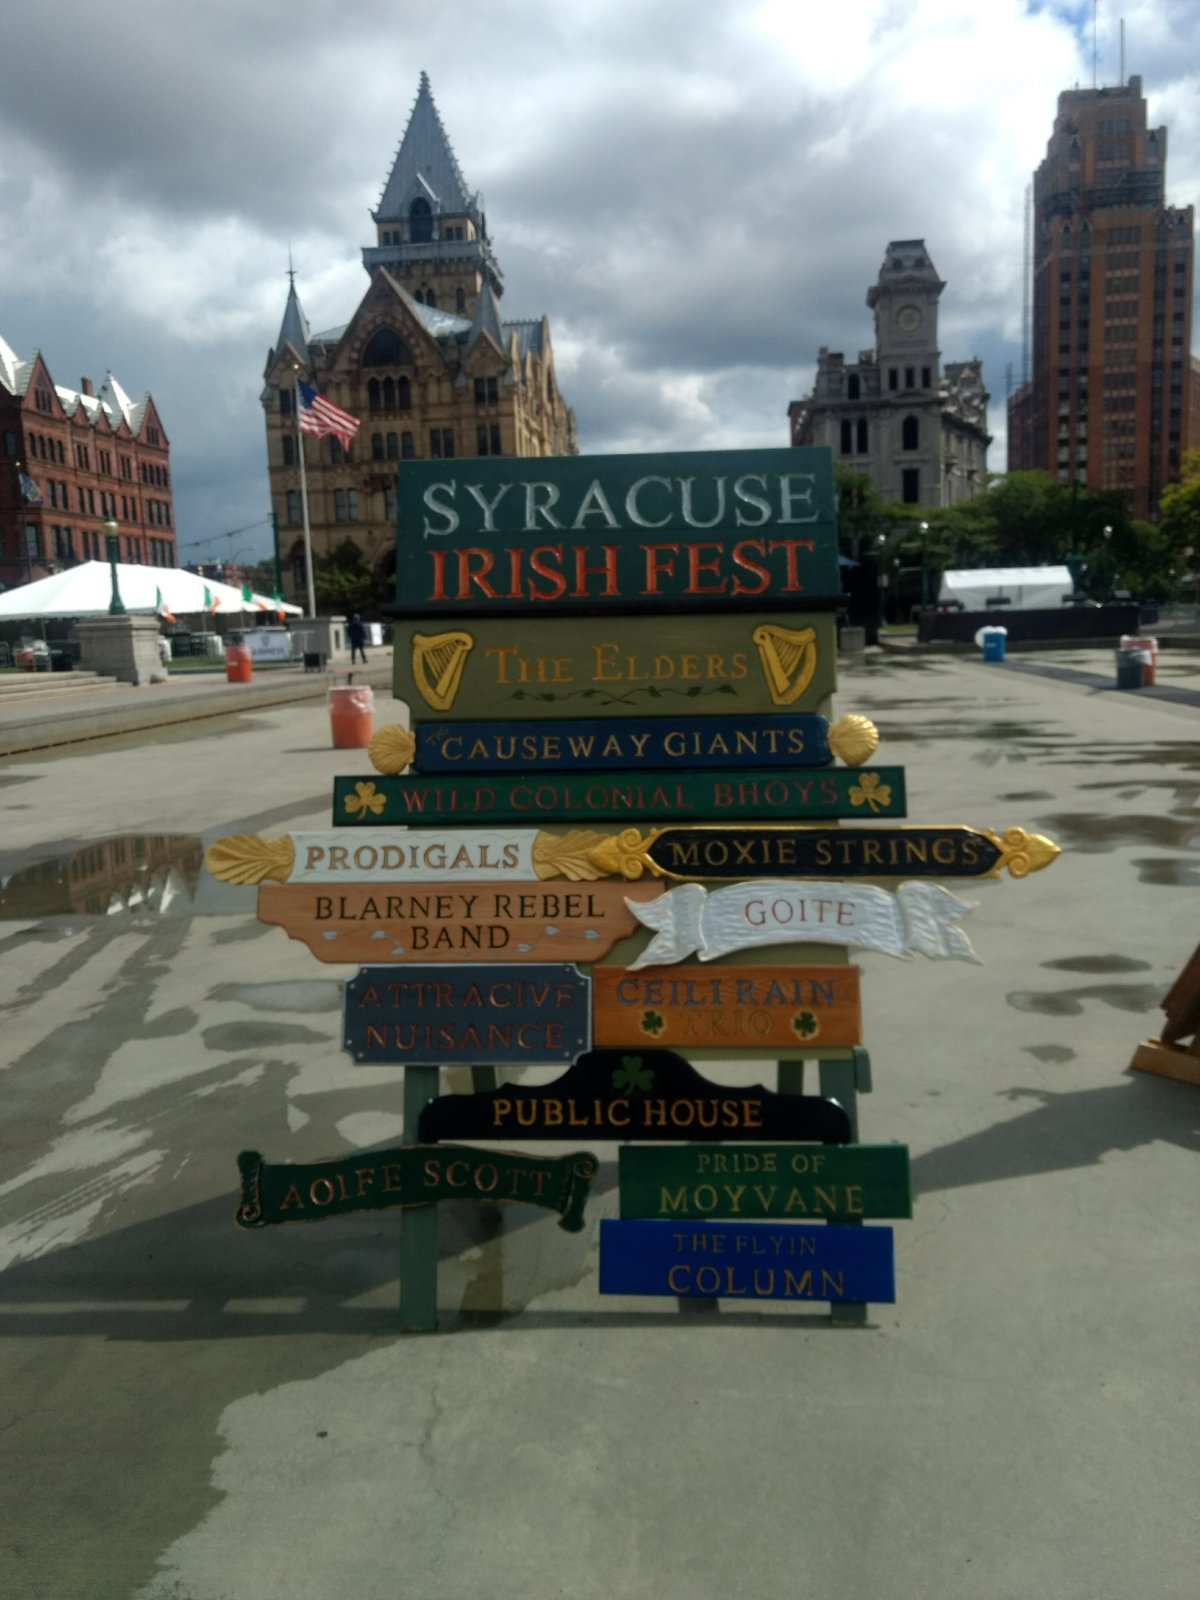 Syracuse Irish Fest